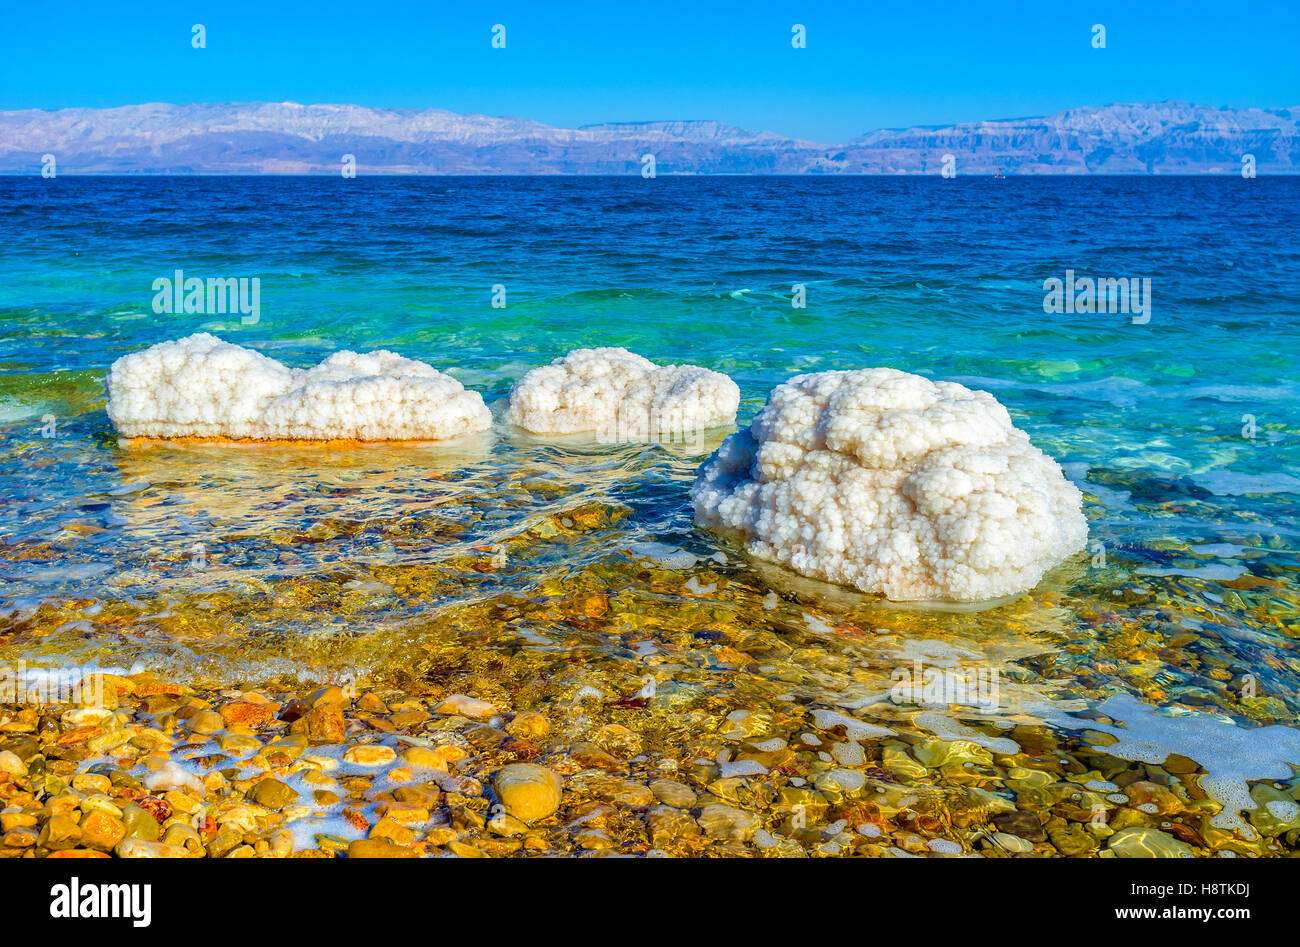 The Dead Sea is one of the world's saltiest bodies of water, creating unusual stones' covers, Ein Gedi, - Stock Image